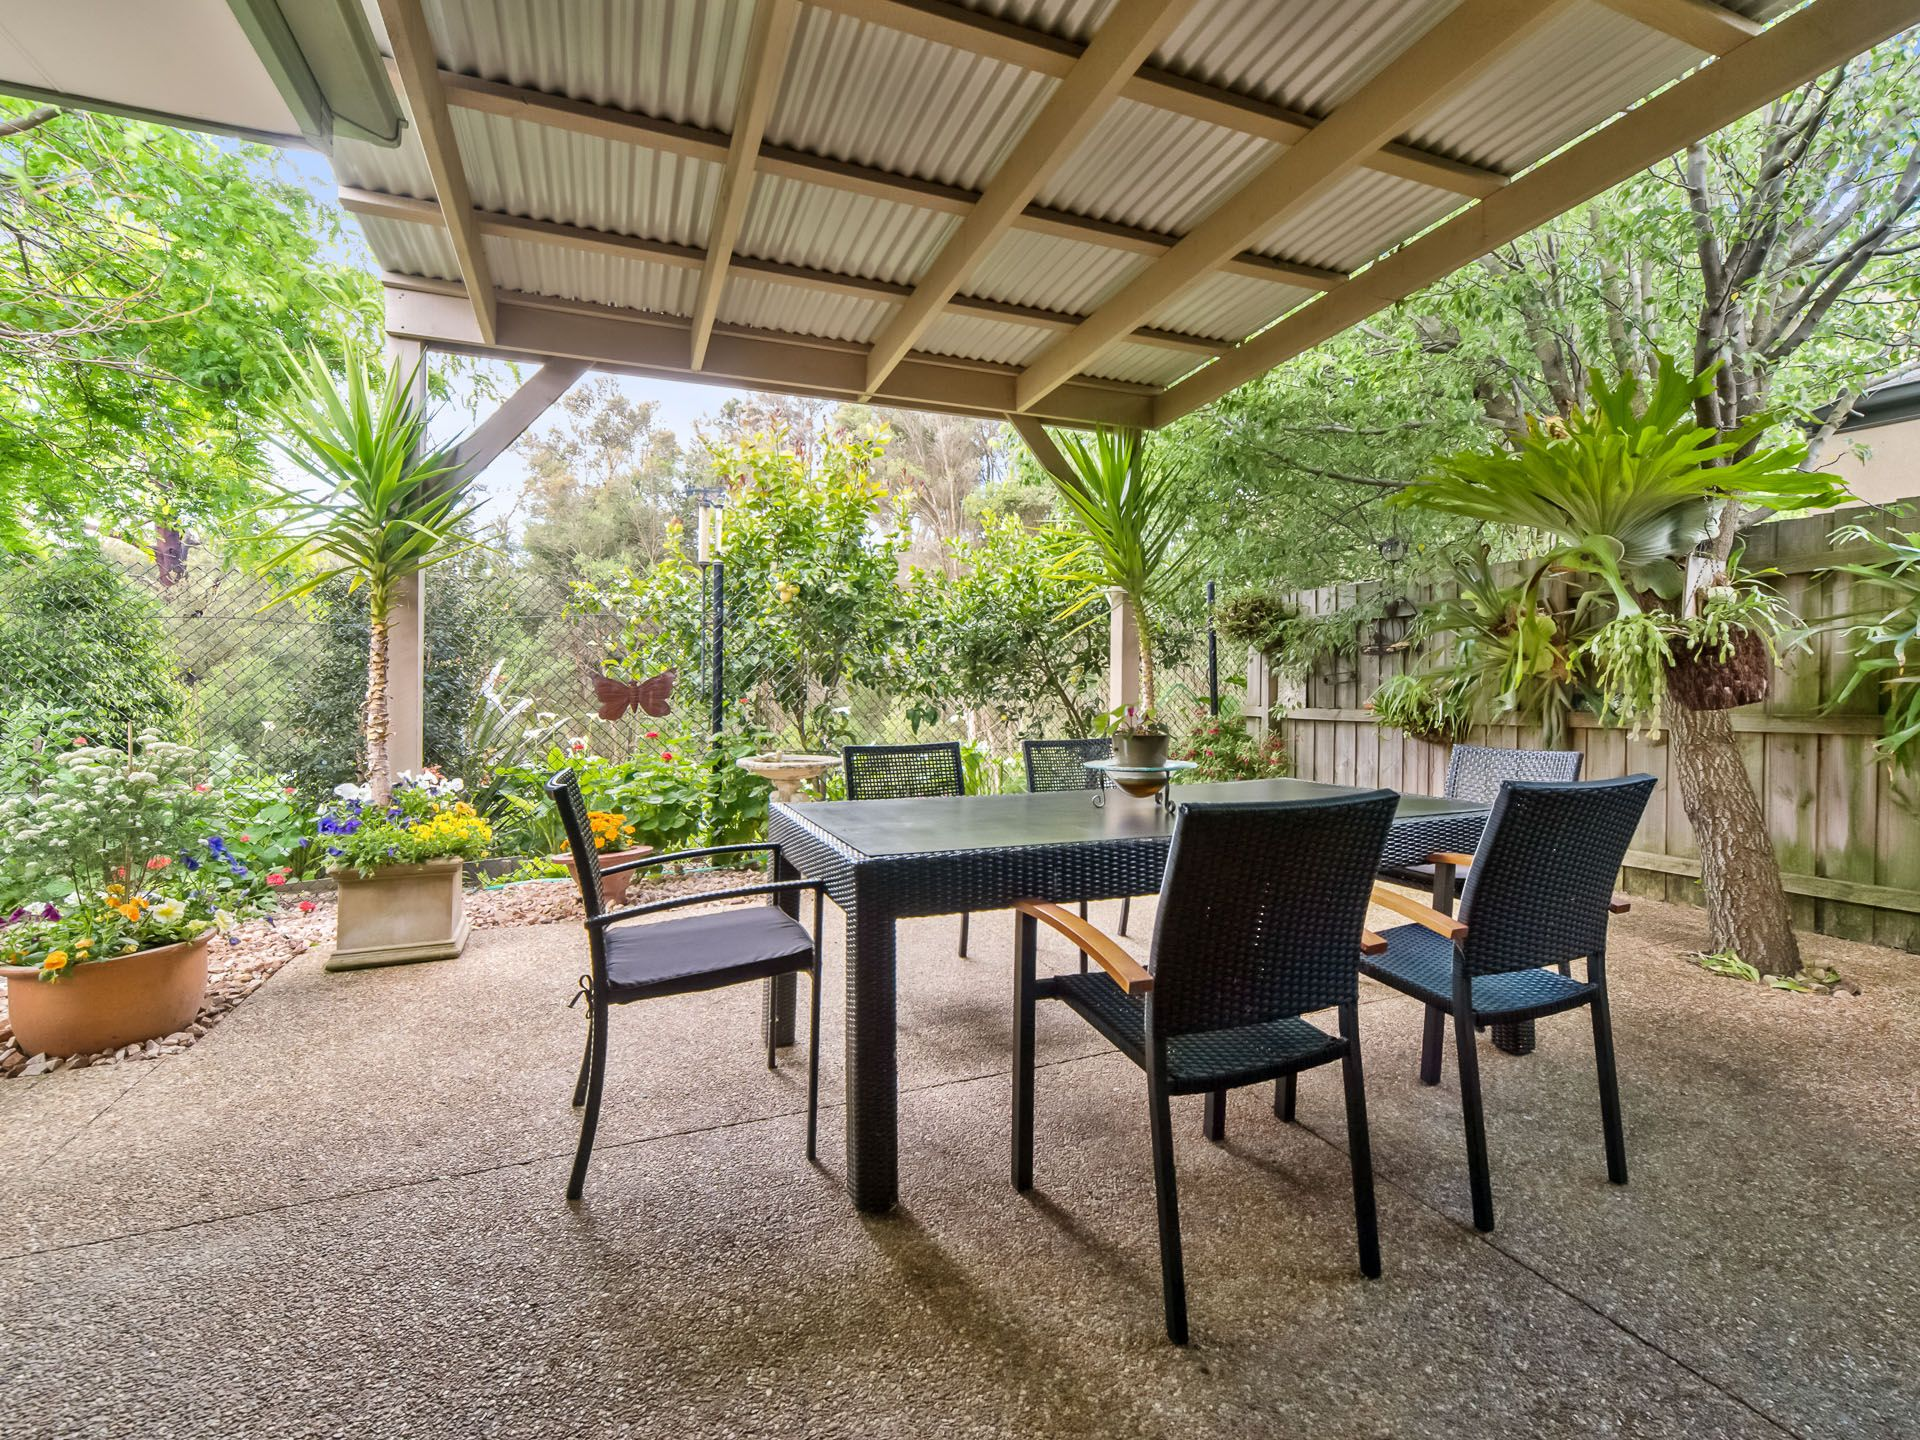 9/102B Country Club Drive, SAFETY BEACH, VIC, 3936 - Image